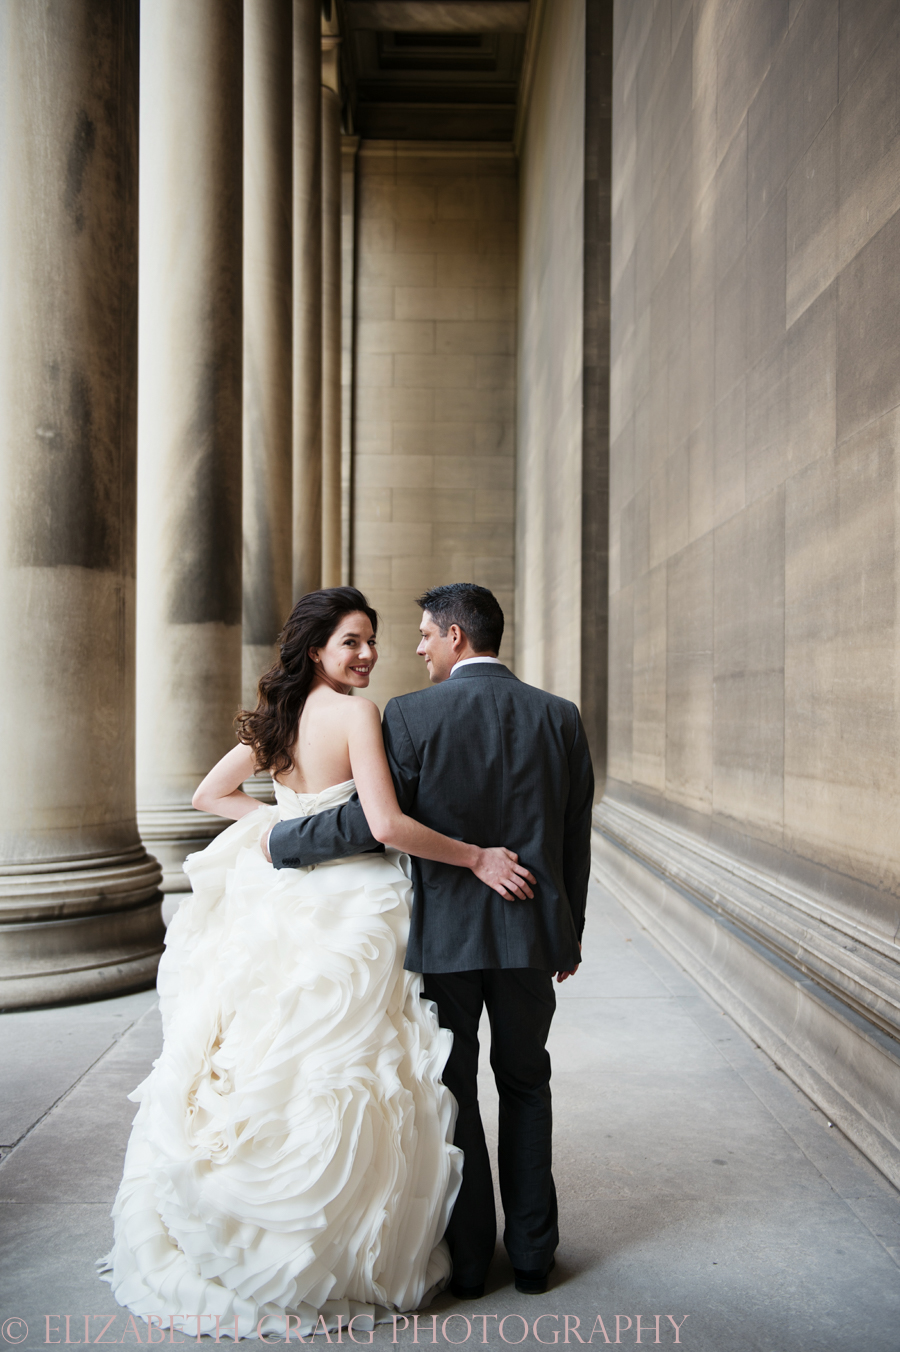 Romantic Wedding Photos | Elizabeth Craig Photography-008